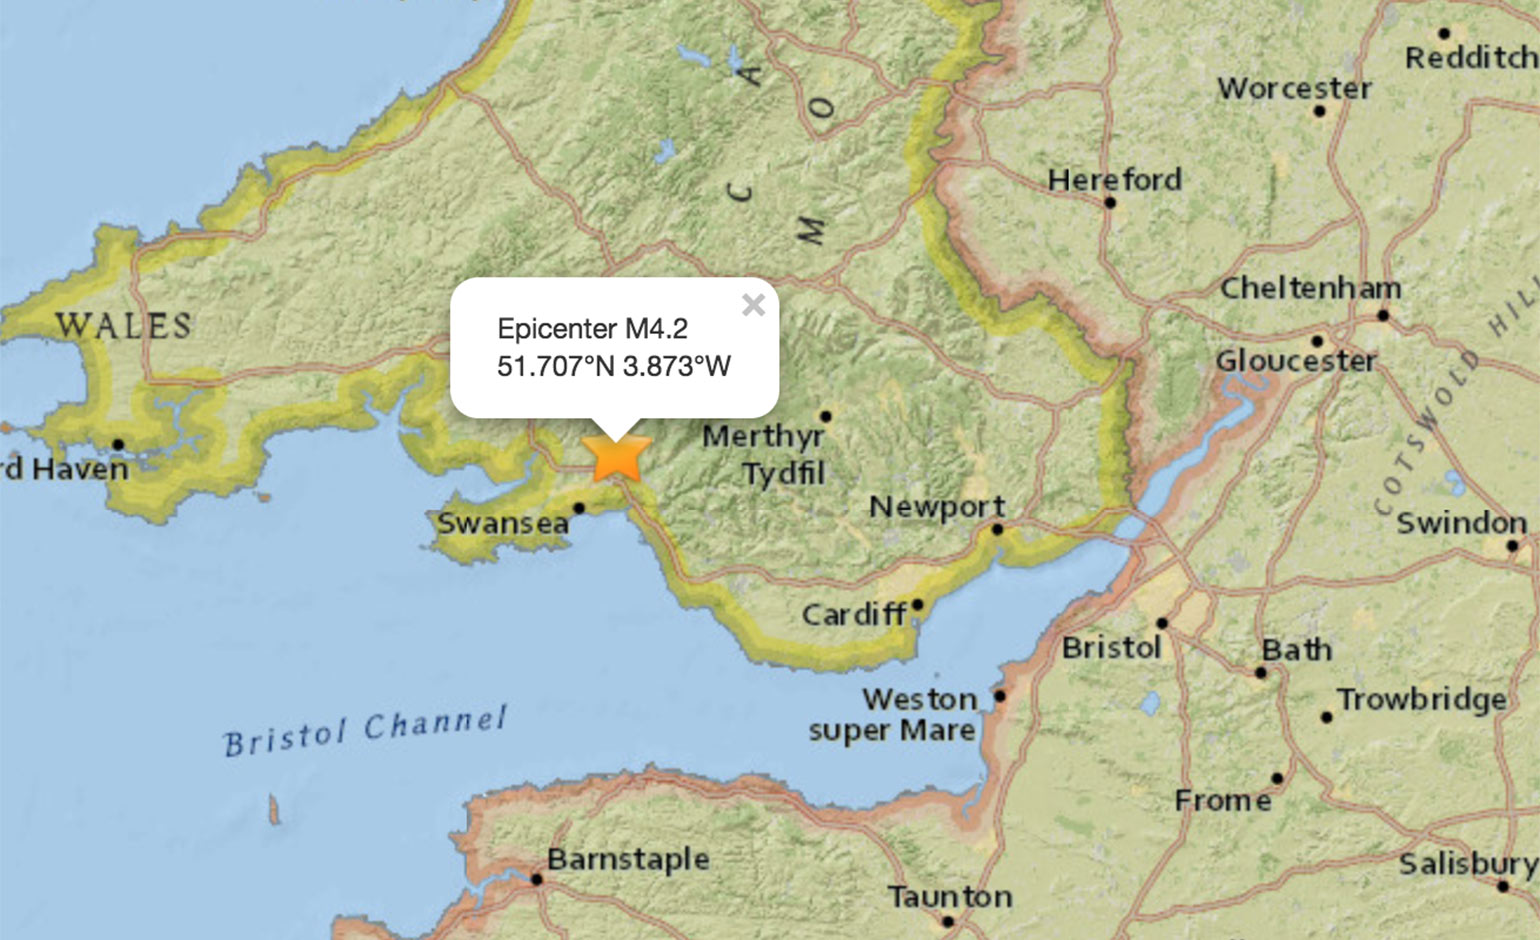 Strong earthquake felt by thousands of people across the South West